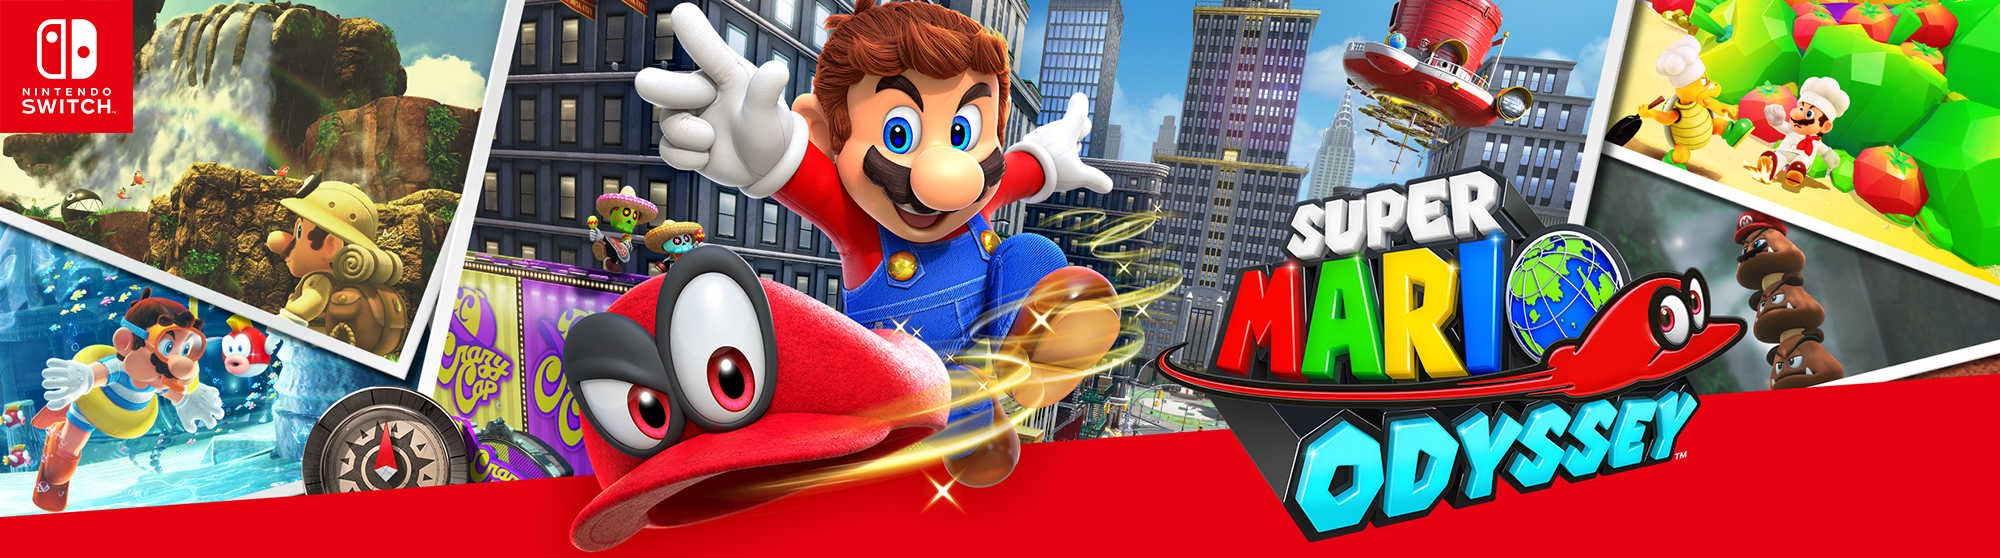 What Super Mario Odyssey Taught Me About Ux Design By Sara Tung